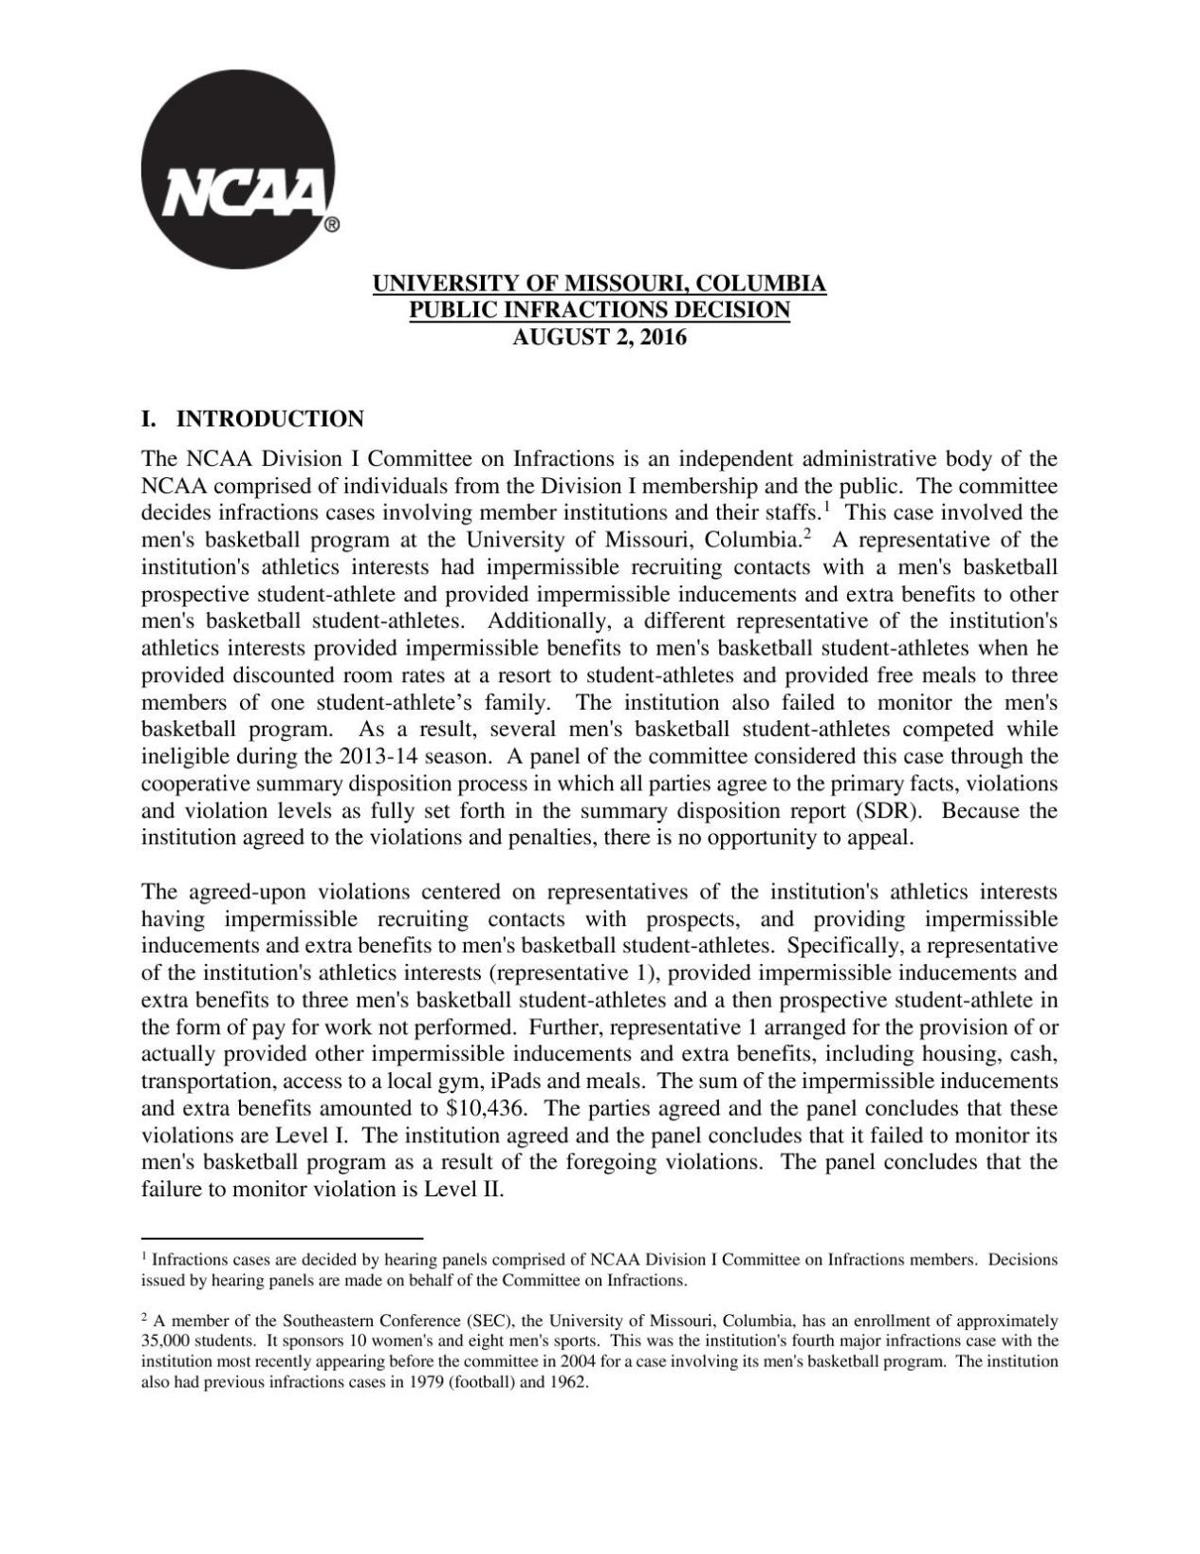 NCAA public infraction report on Missouri basketball